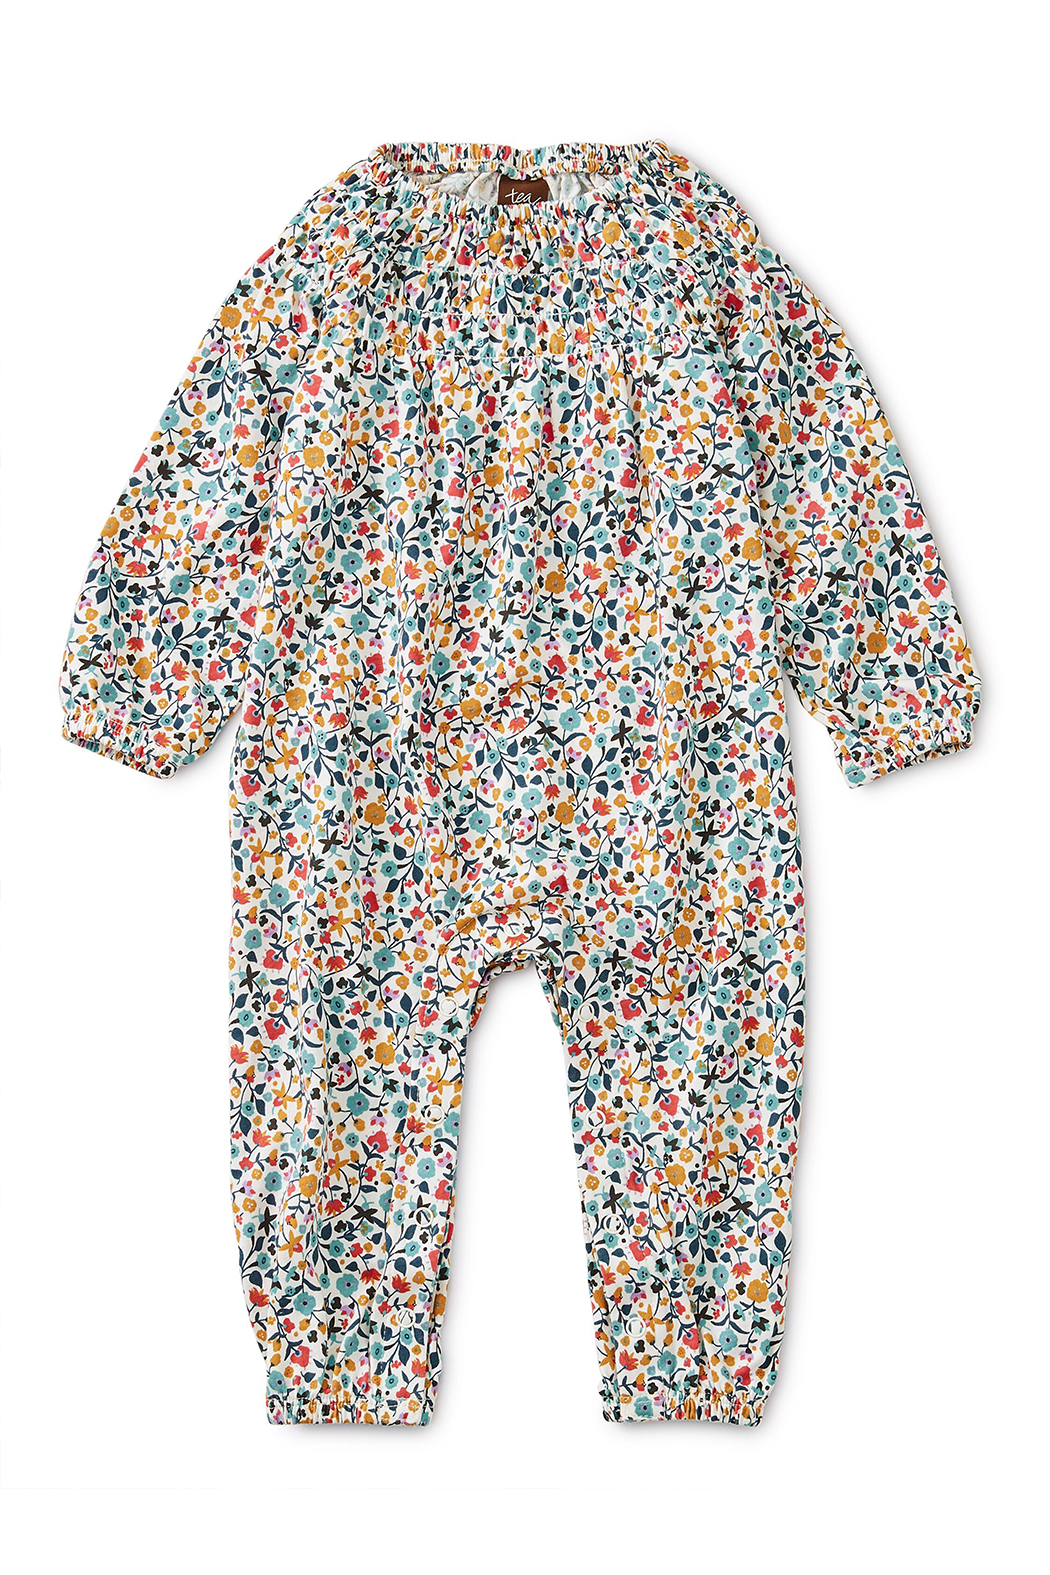 Tea Collection Printed Smocked Romper - Main Image